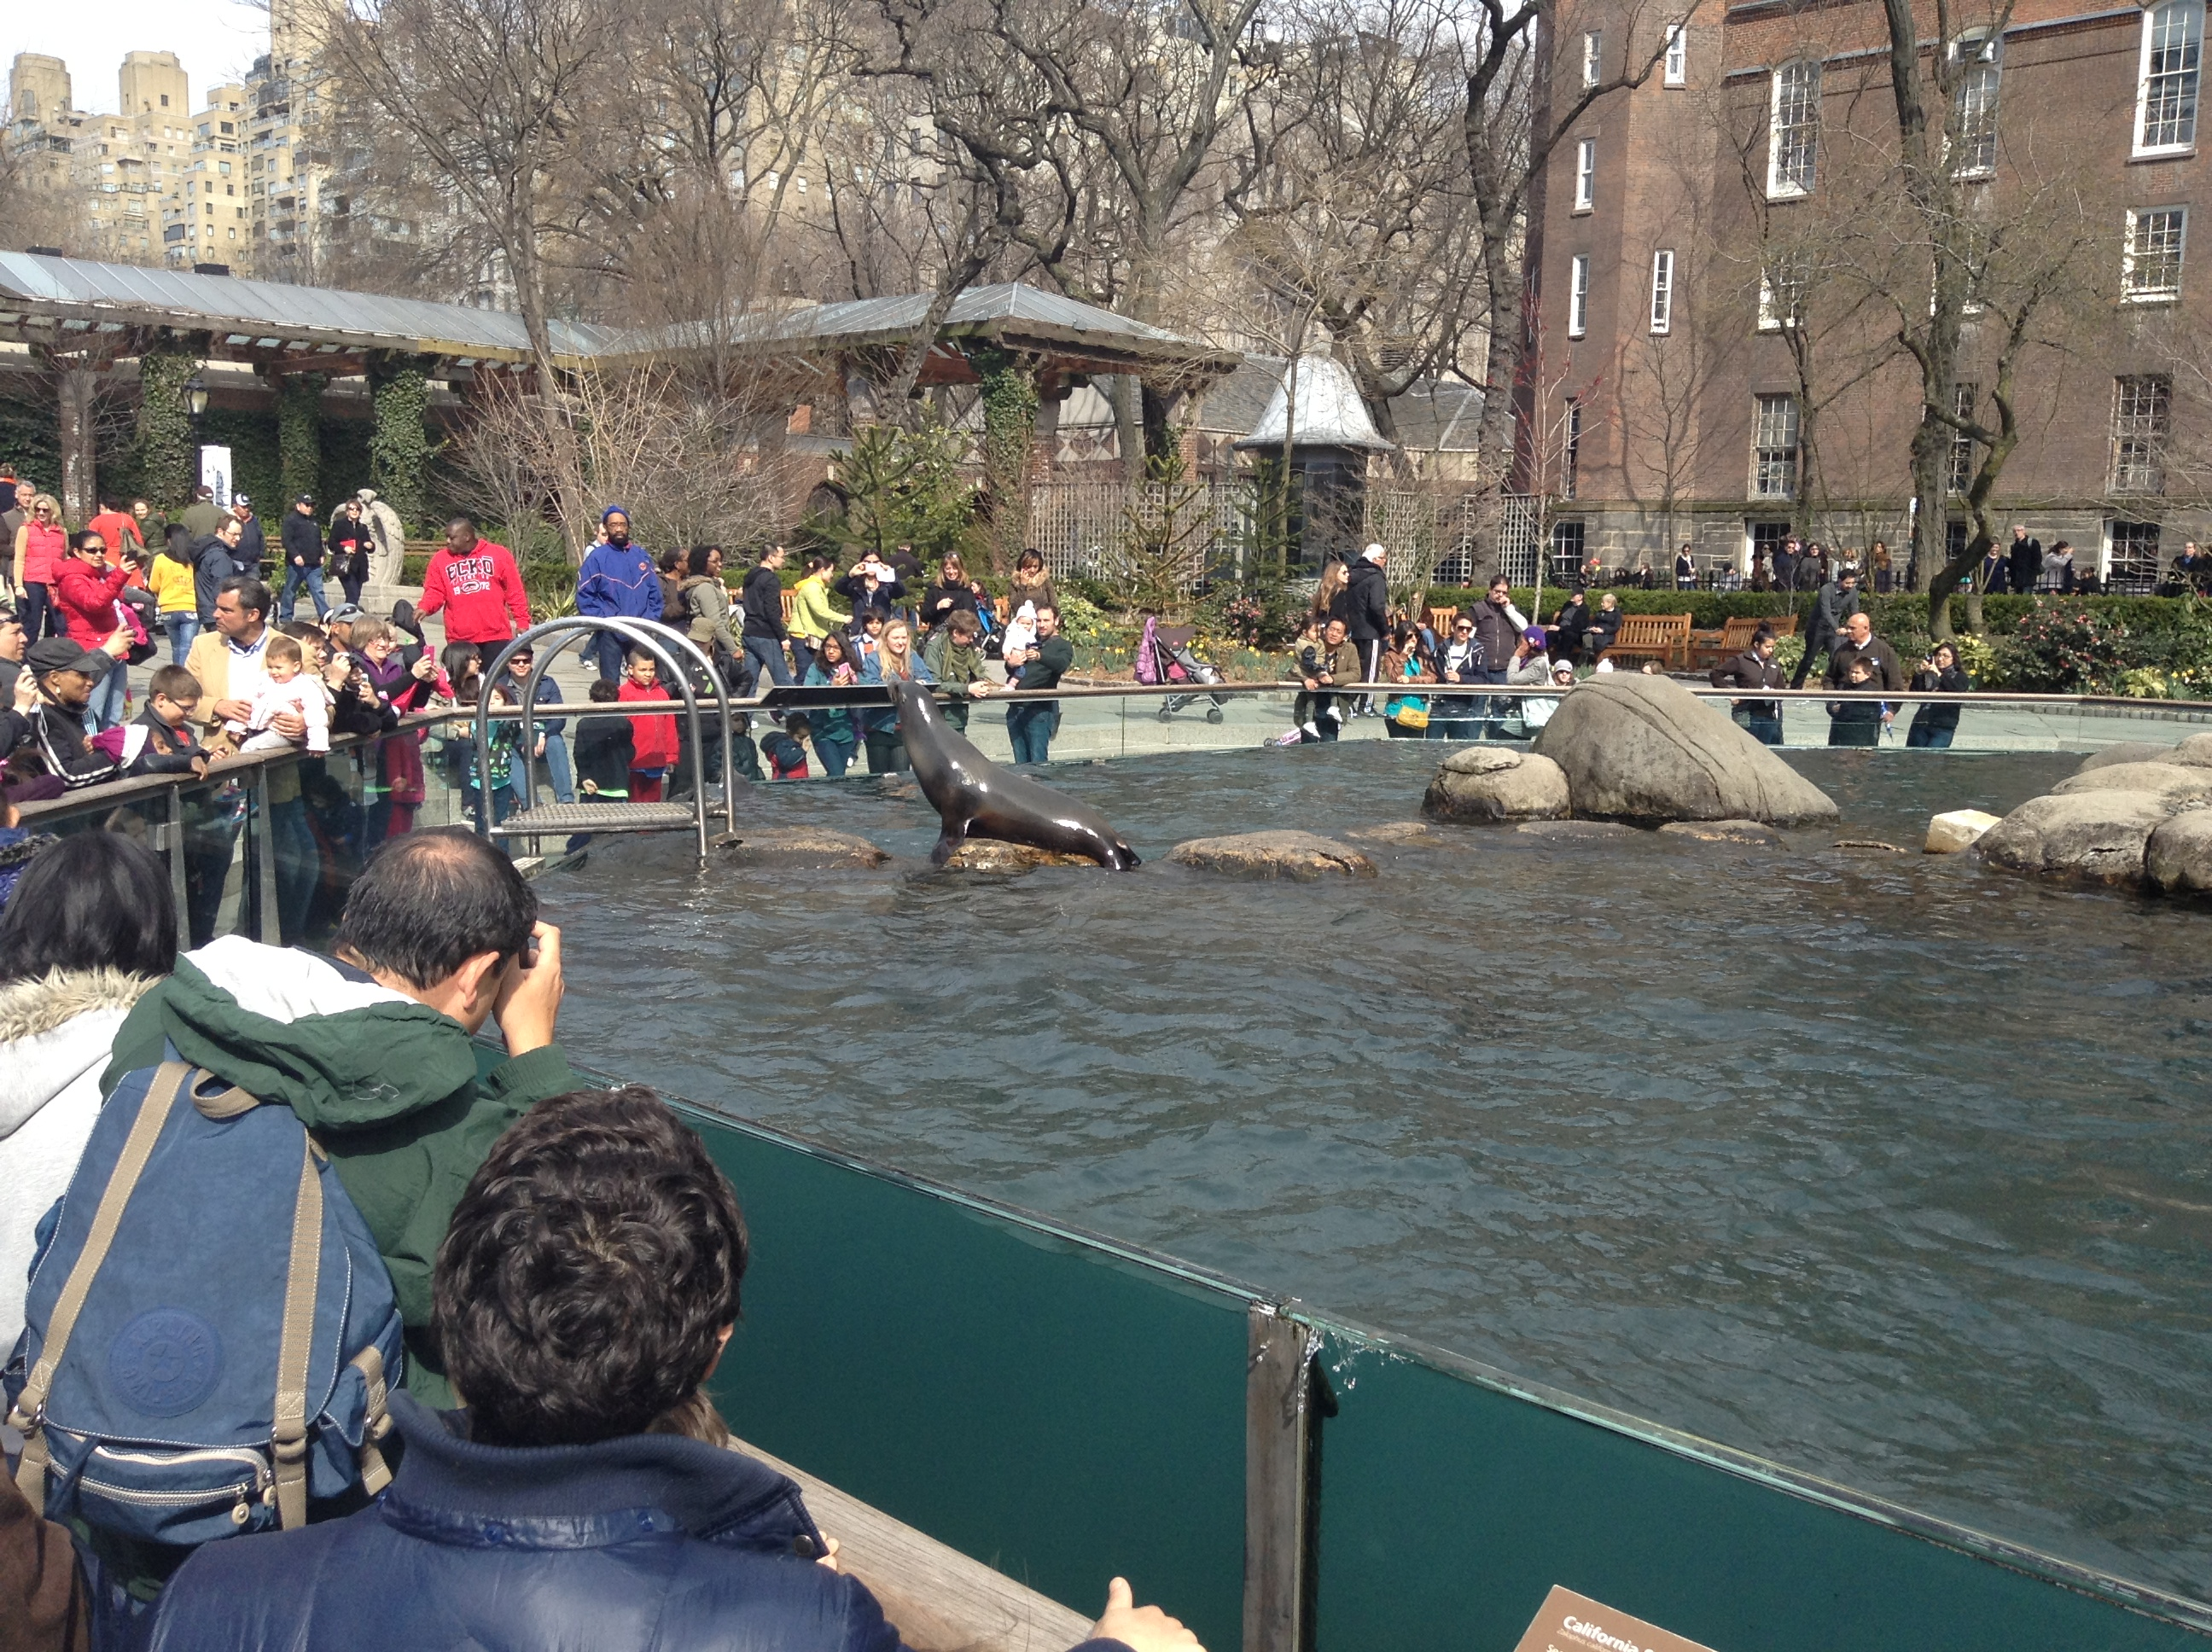 central park zoo things to do in midtown